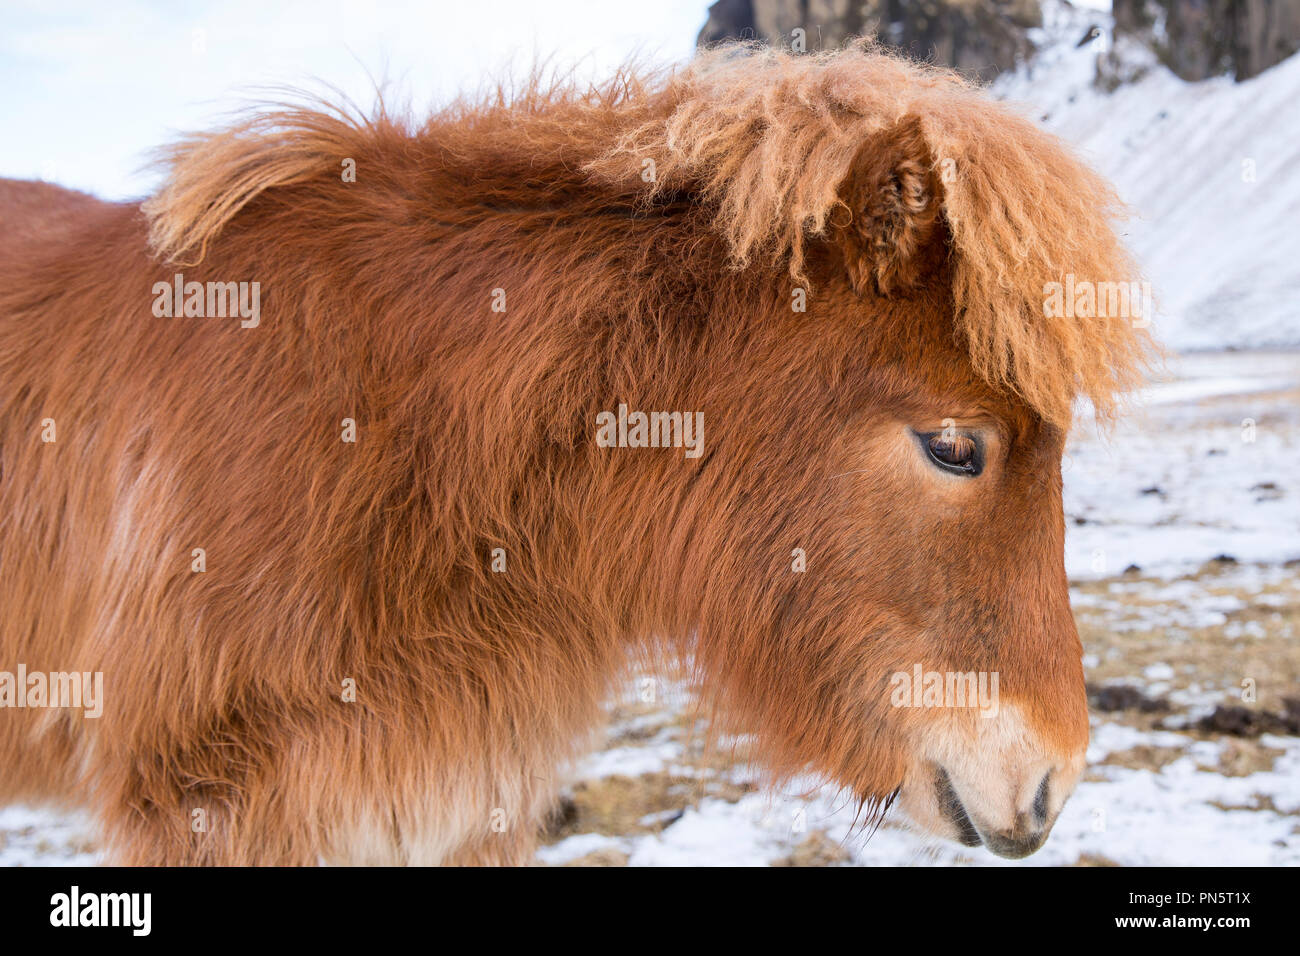 Close-up headshot portrait side view of cute shaggy-haired typical Icelandic pony in South Iceland - Stock Image